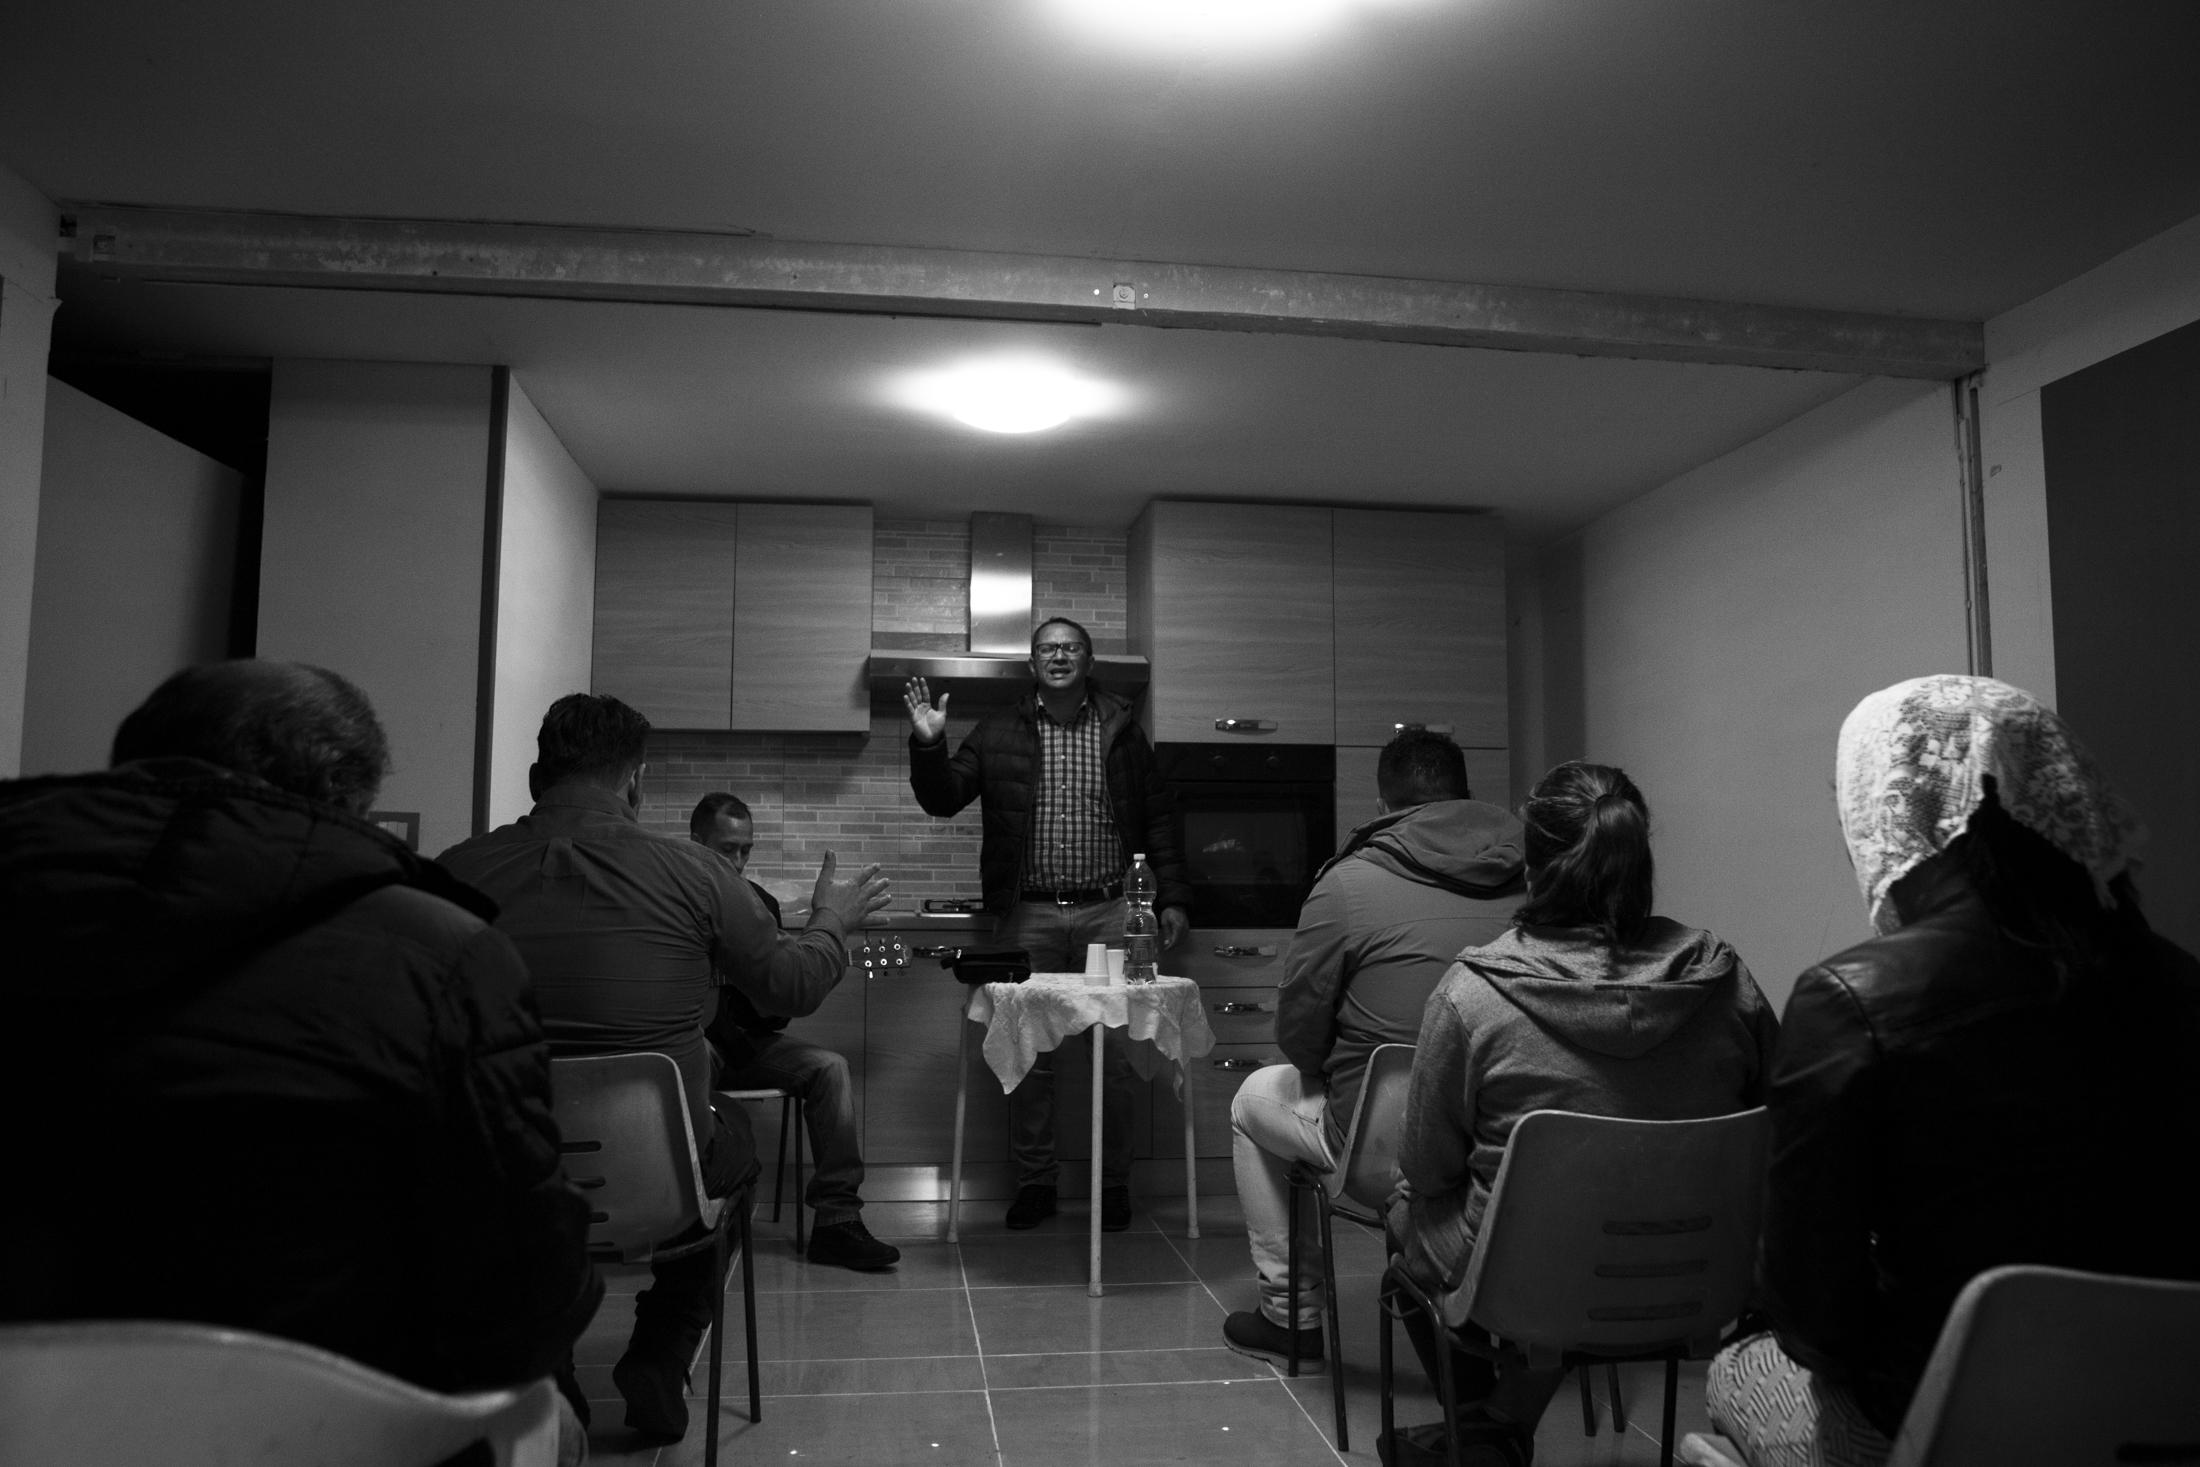 March 2017, nomad camp of Castelnuovo Rangone, Emilia Romagna, Italy. Prayer of the evangelical cult held inside a mobile home of the camp. Evangelical cults are gaining ground within the Sinti community. The shepherds, also of the Sinti ethnic group, move from field to field to support the various cults and involve an increasing number of faithful.